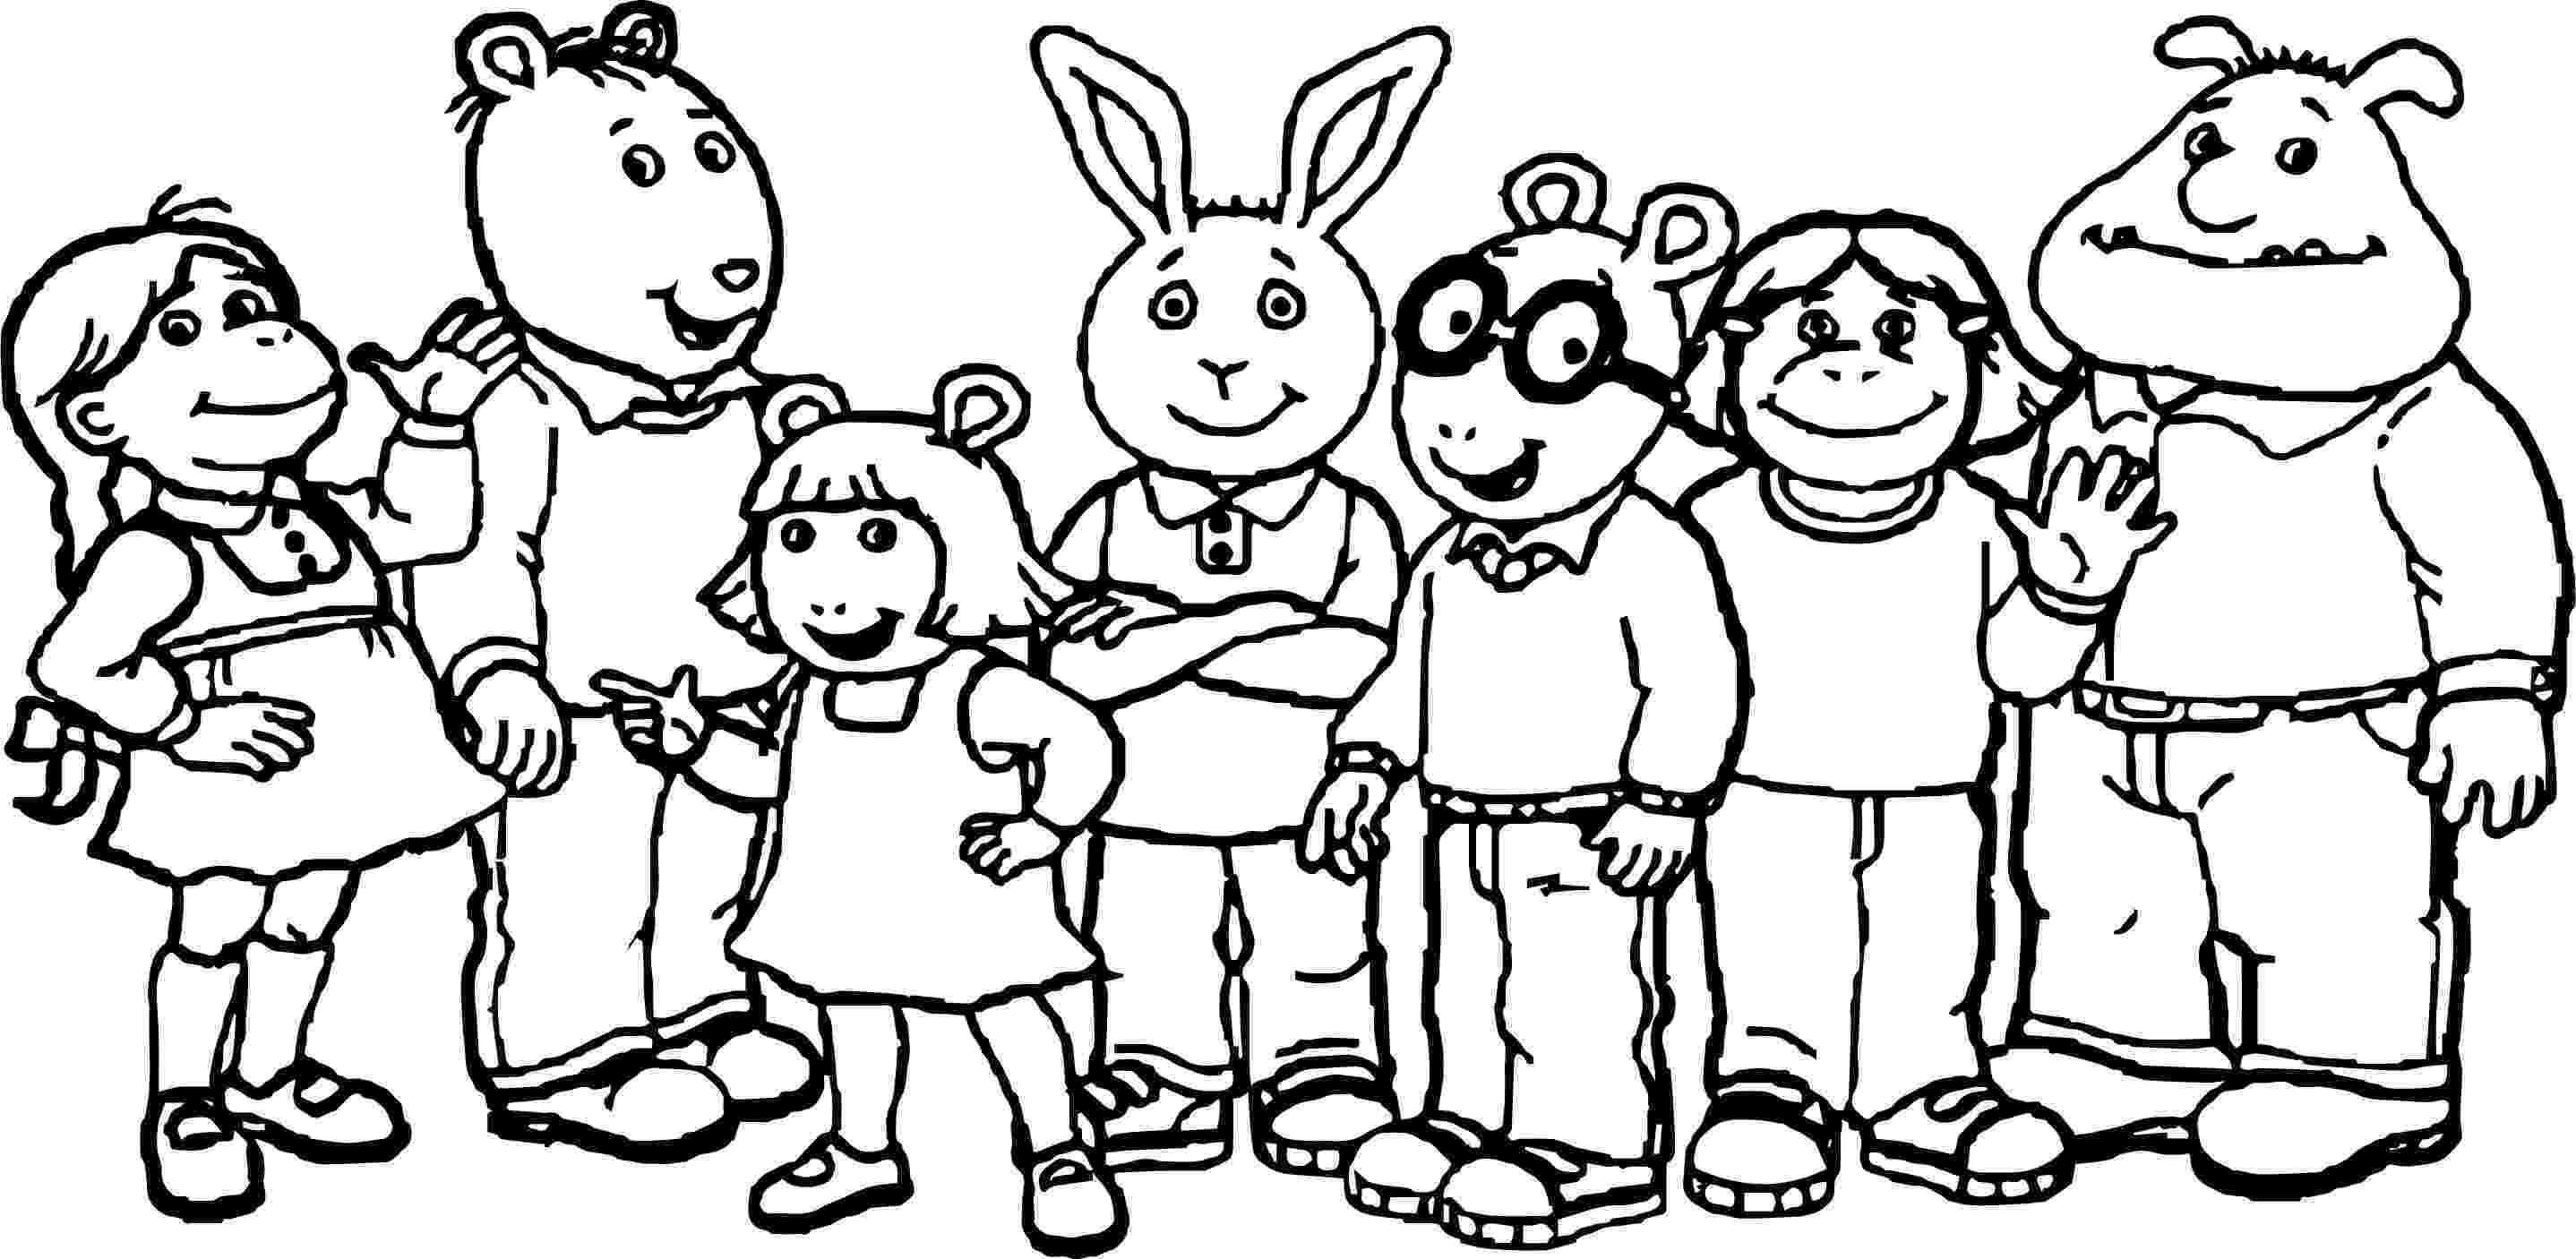 arthur coloring pages arthur coloring pages to download and print for free coloring arthur pages